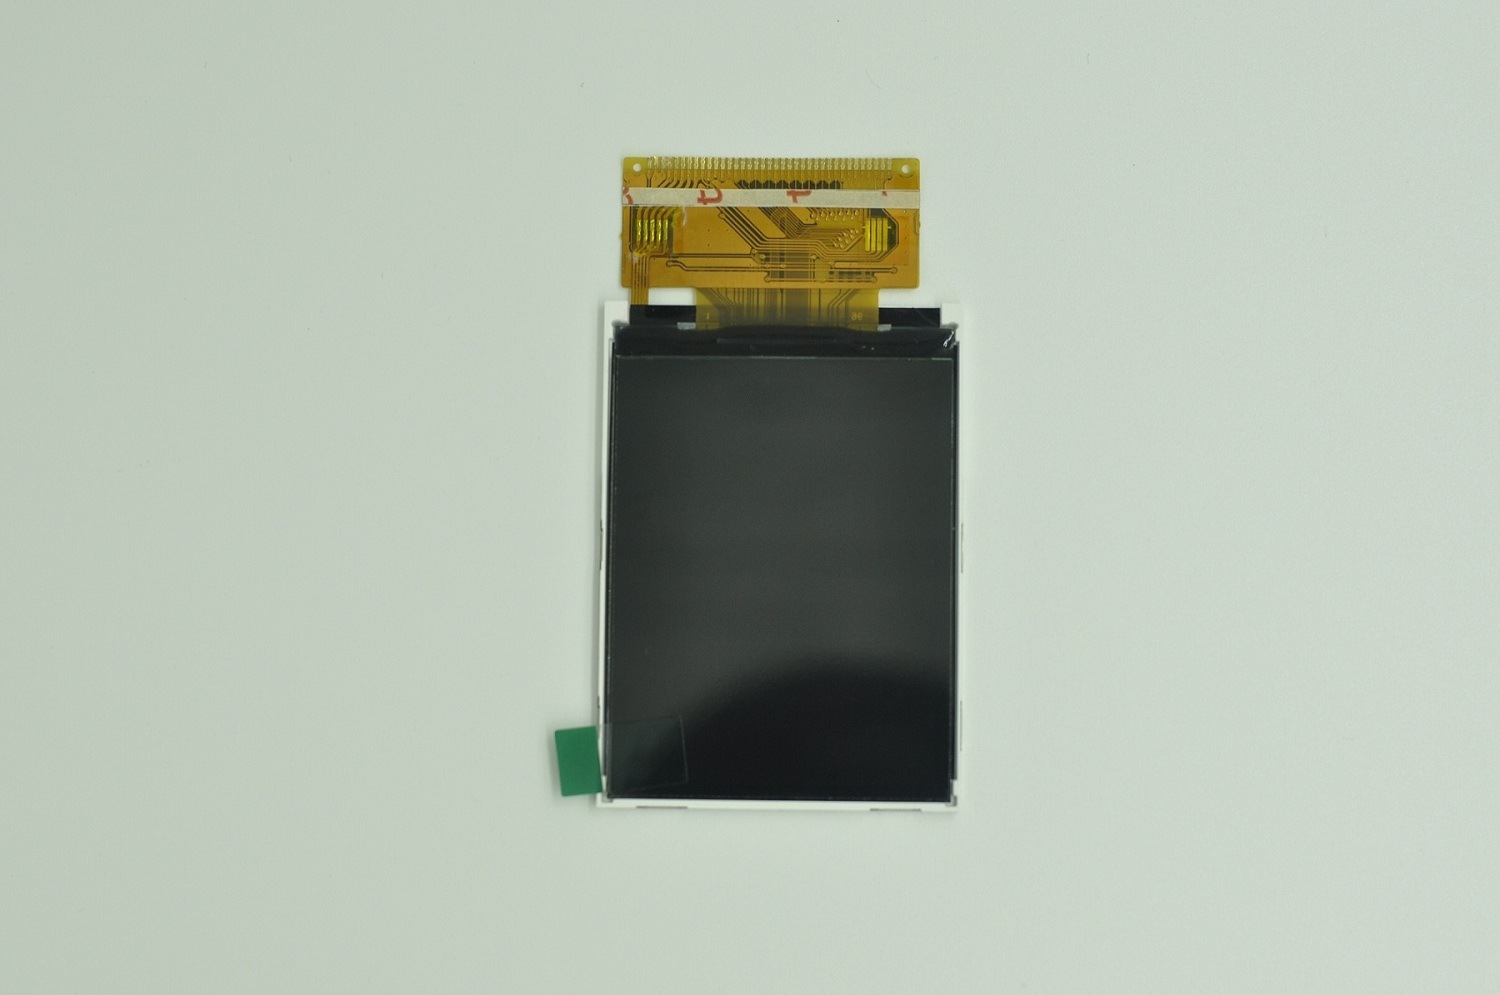 Rg024gqt-02r 2.4inch TFT LCD Screen with MCU Interface